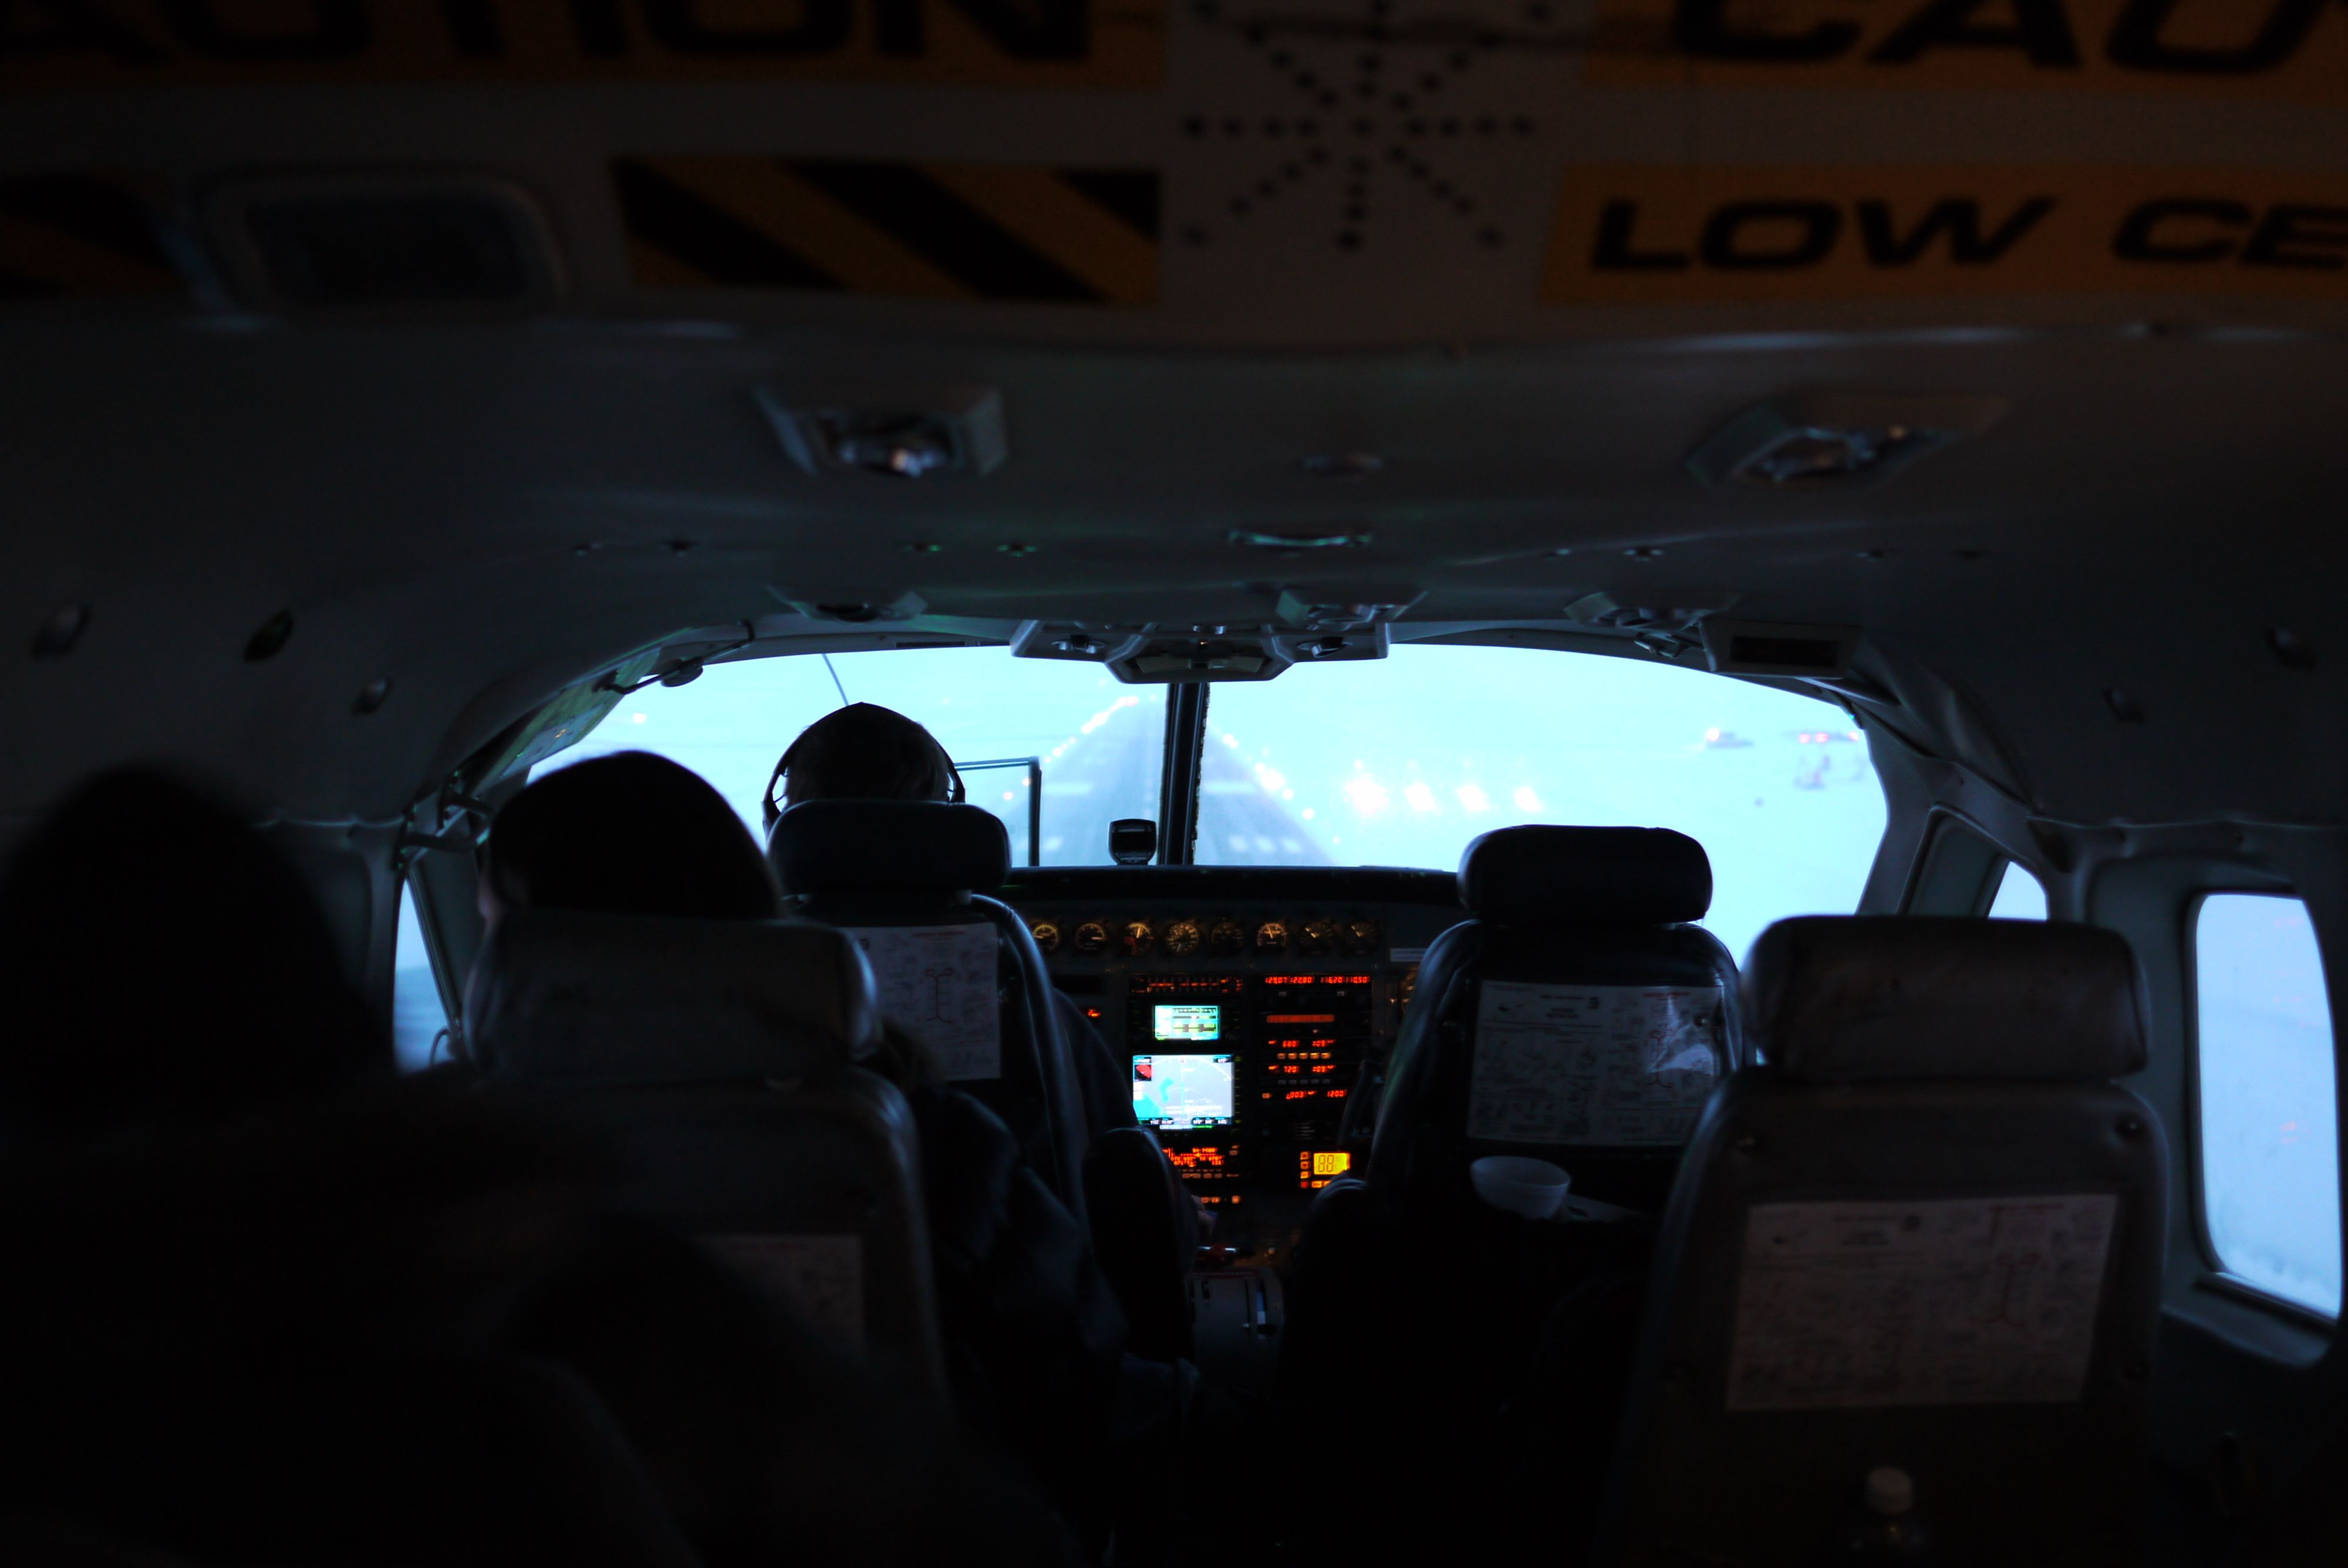 Landing at Barrow Airport. The Cessna 208 Caravan, where everyone gets a front window seat.